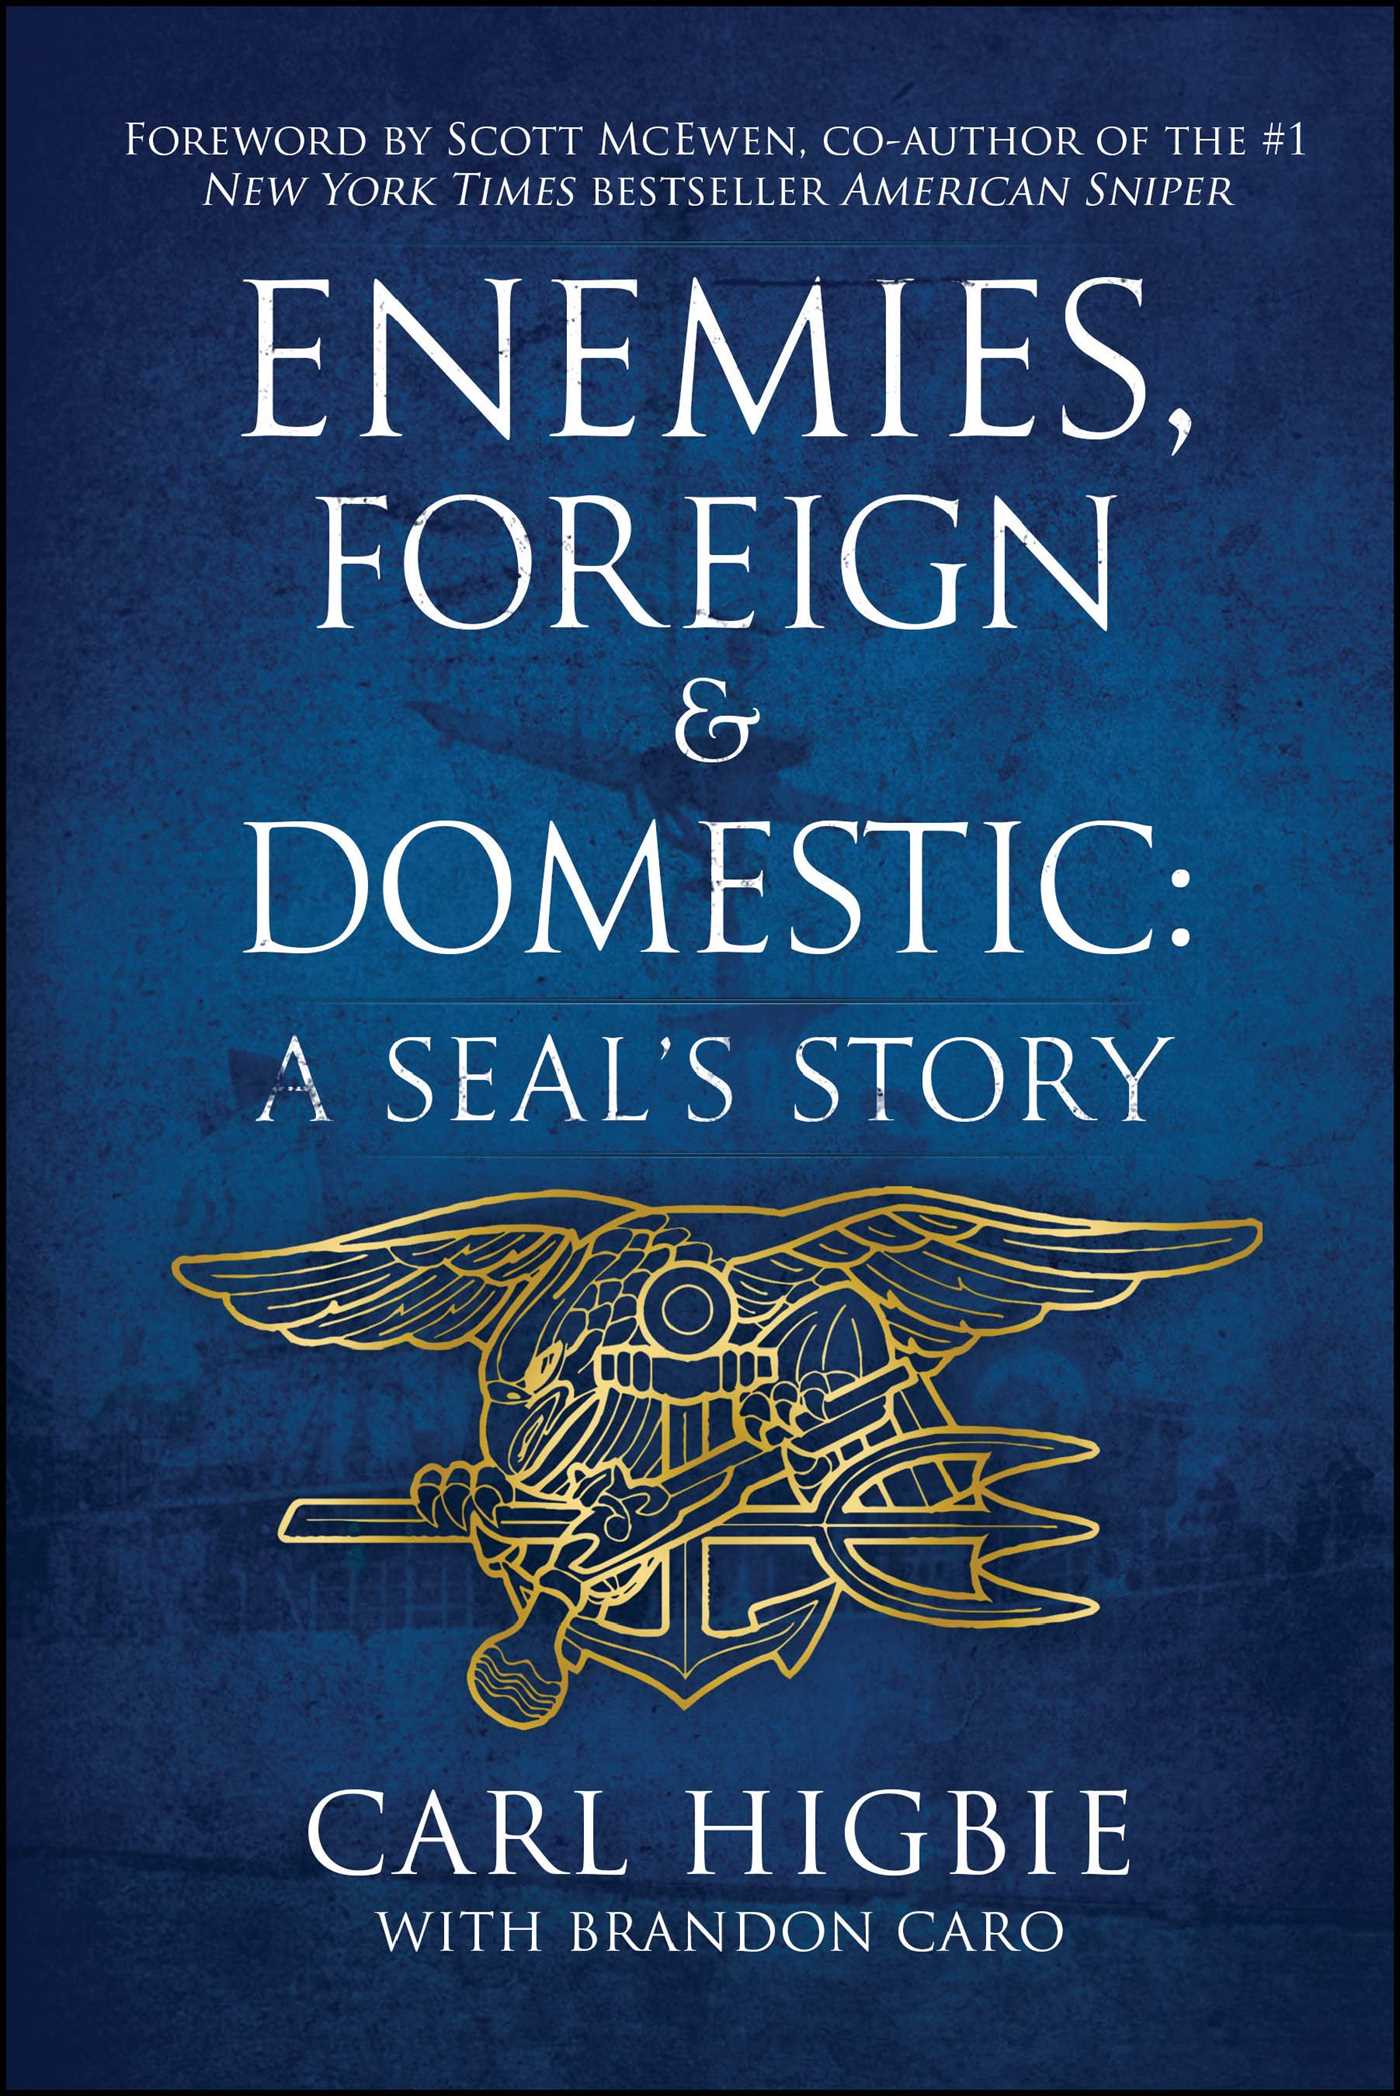 Enemies foreign and domestic 9781682614679 hr